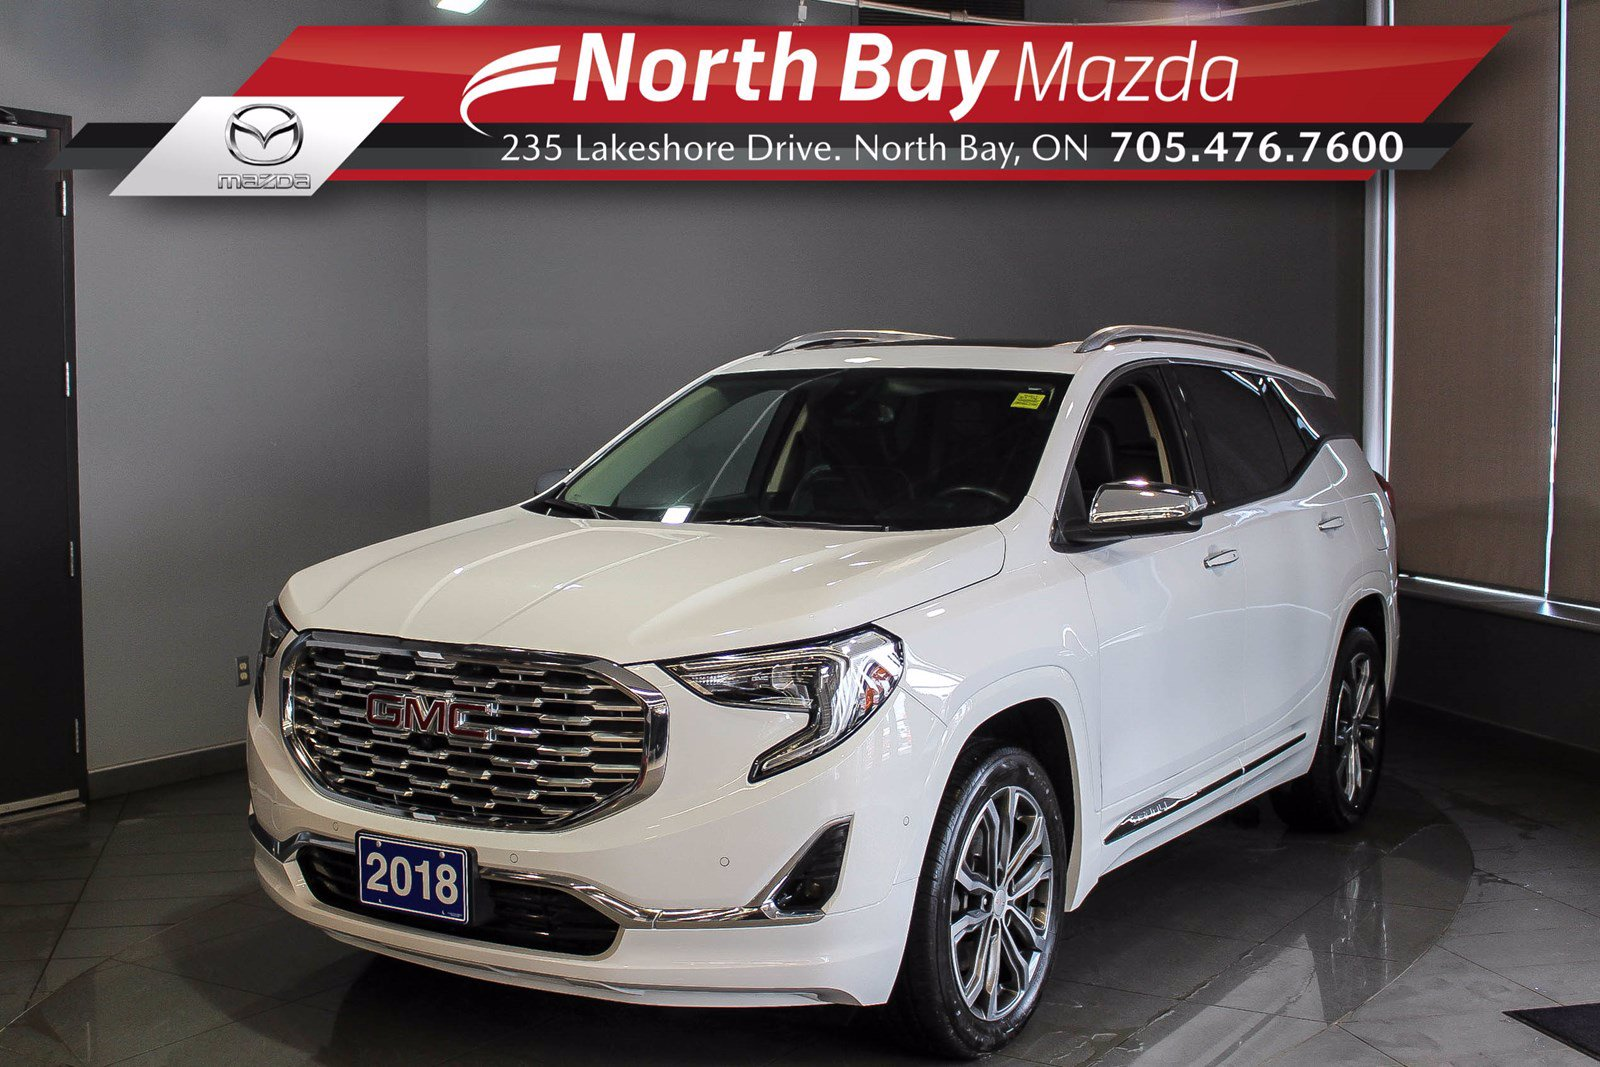 Pre-Owned 2018 GMC Terrain Denali AWD - Virtual Tour & Curbside Delivery Available!